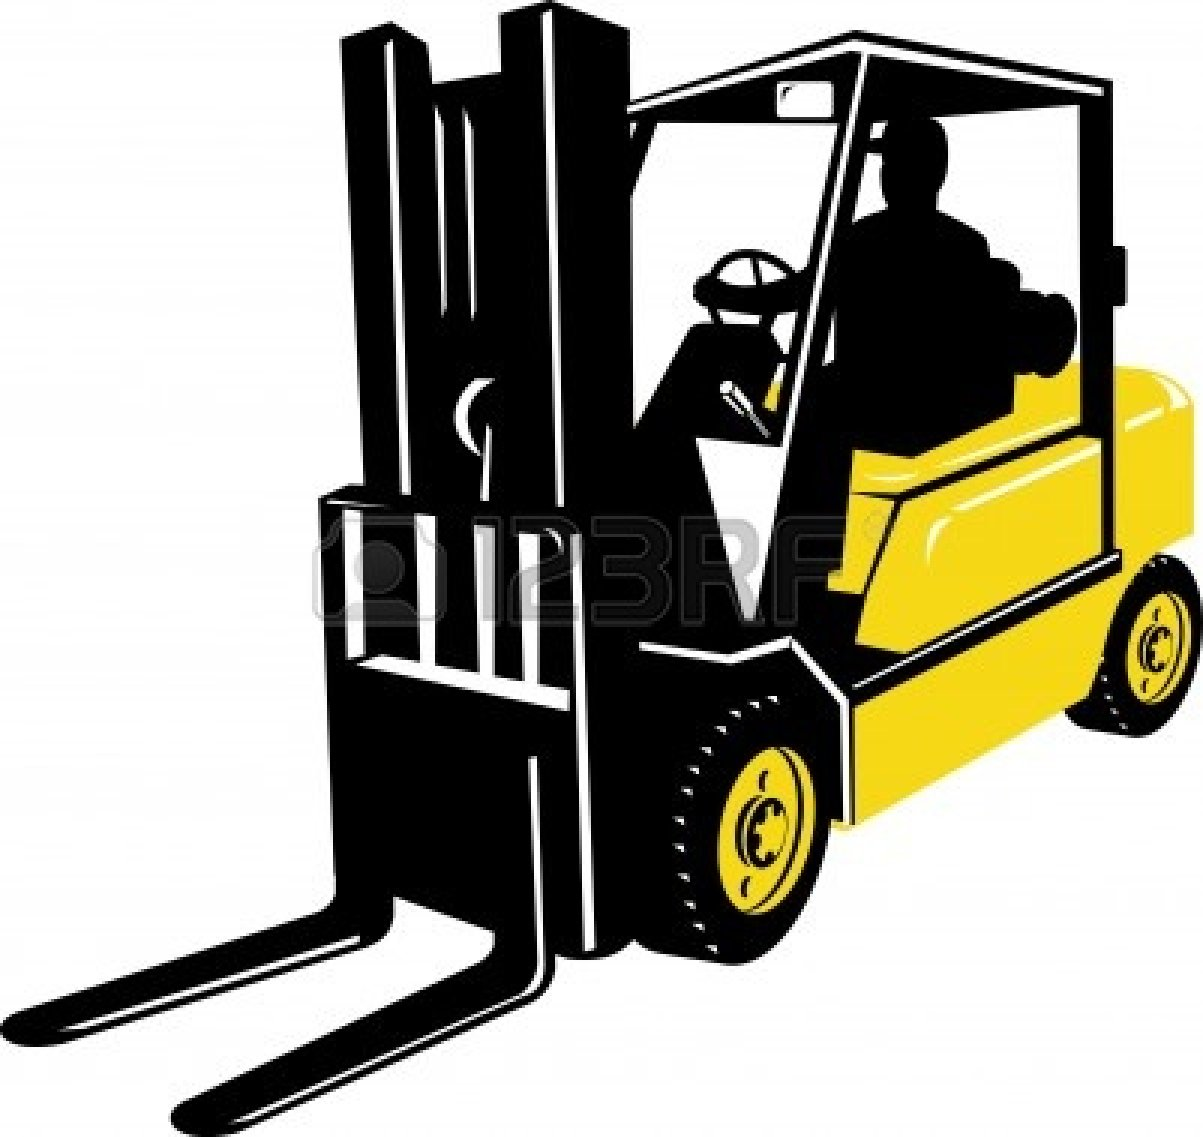 219 Forklift free clipart.